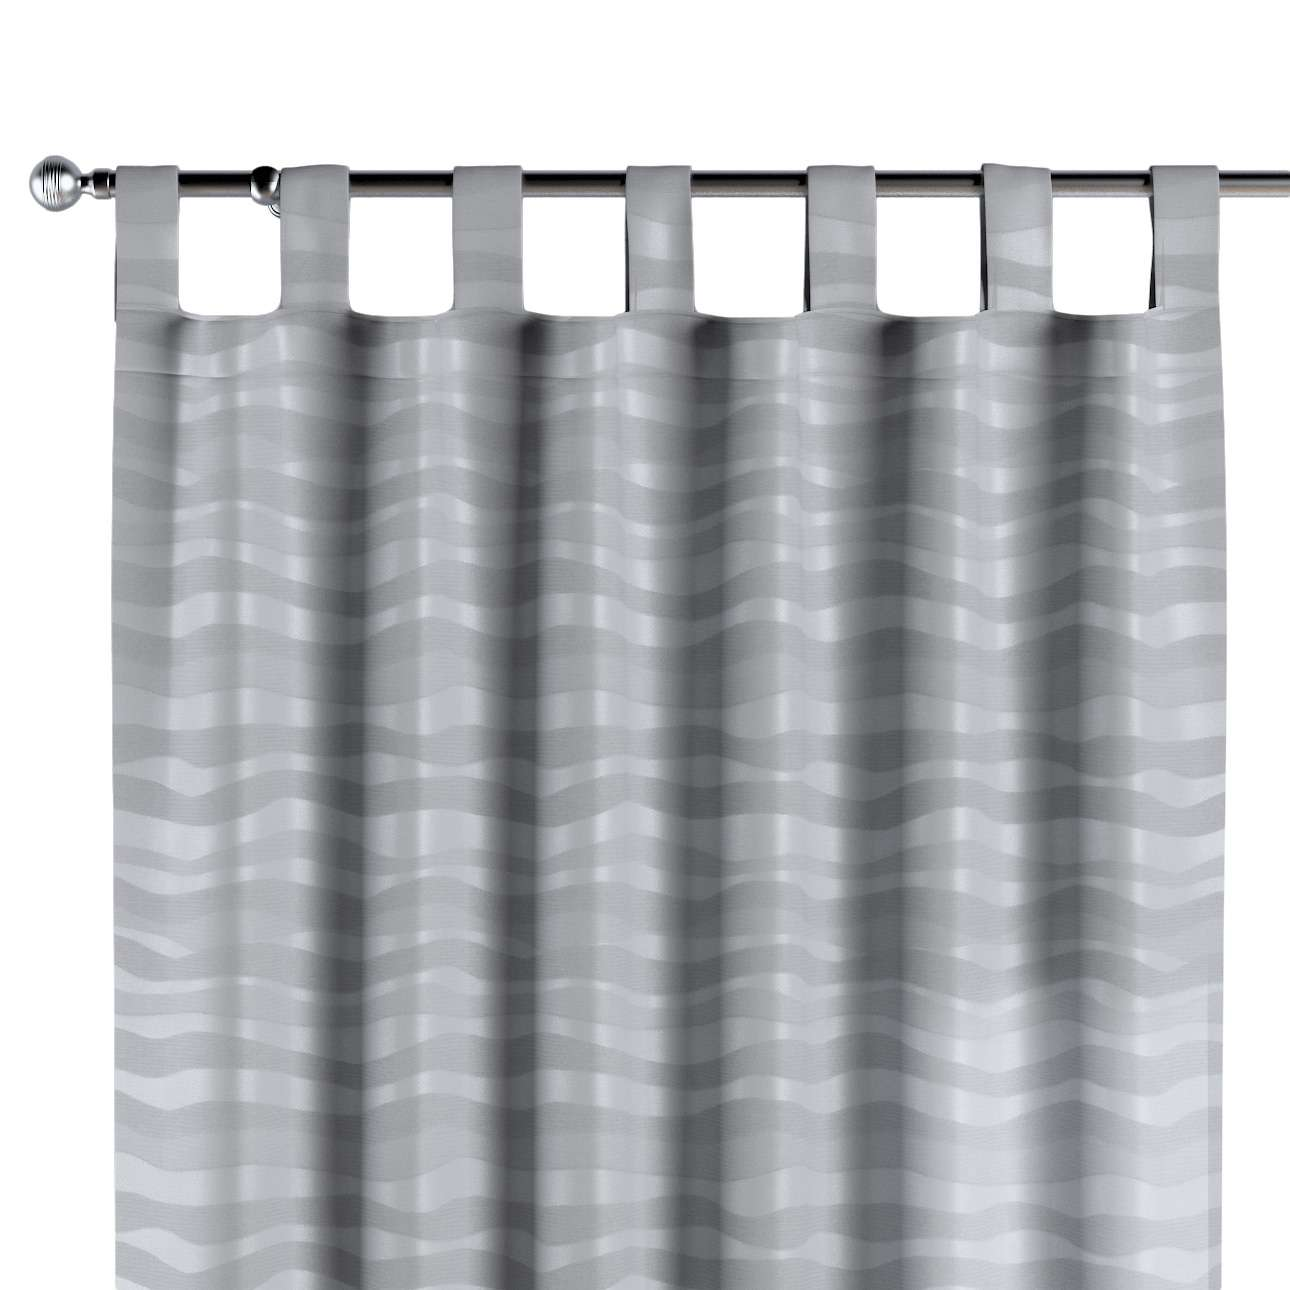 Tab top curtains in collection Damasco, fabric: 141-72